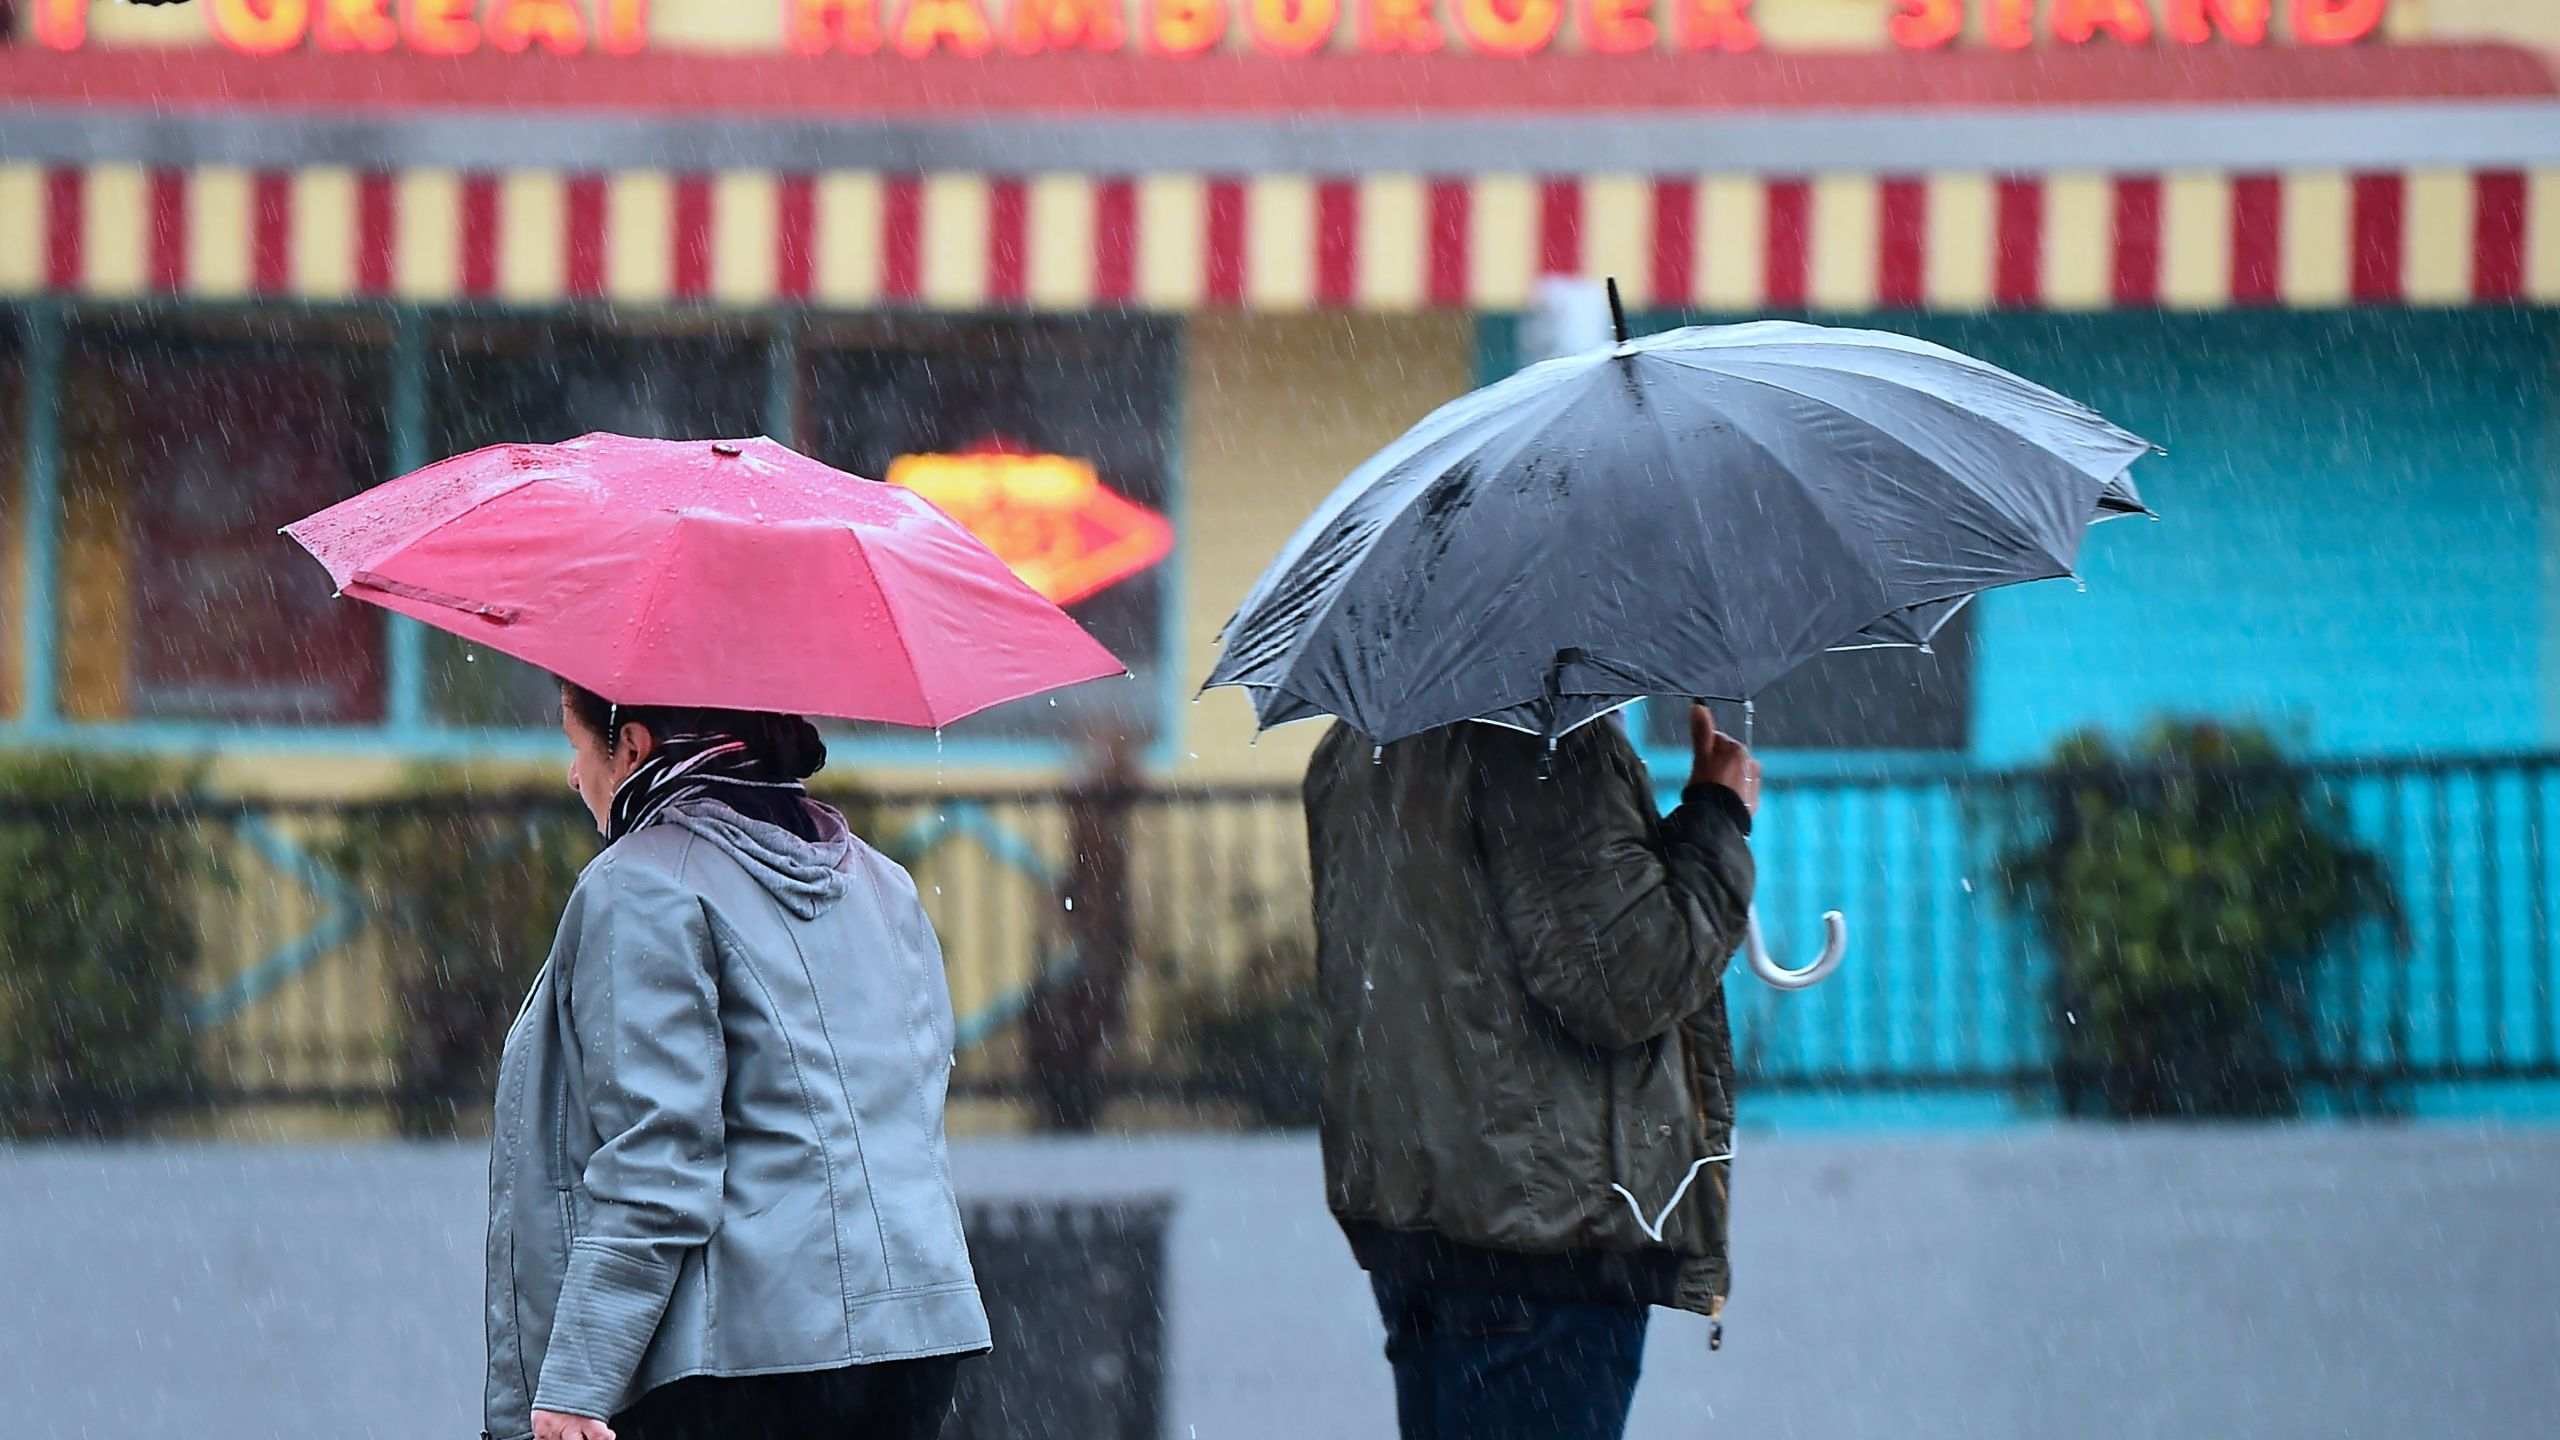 Pedestrians use umbrellas in the rain in Los Angeles, California on February 14, 2019, as southern California residents brace themselves for another heavy session of rainfall. (Frederic J. Brown/AFP via Getty Images)